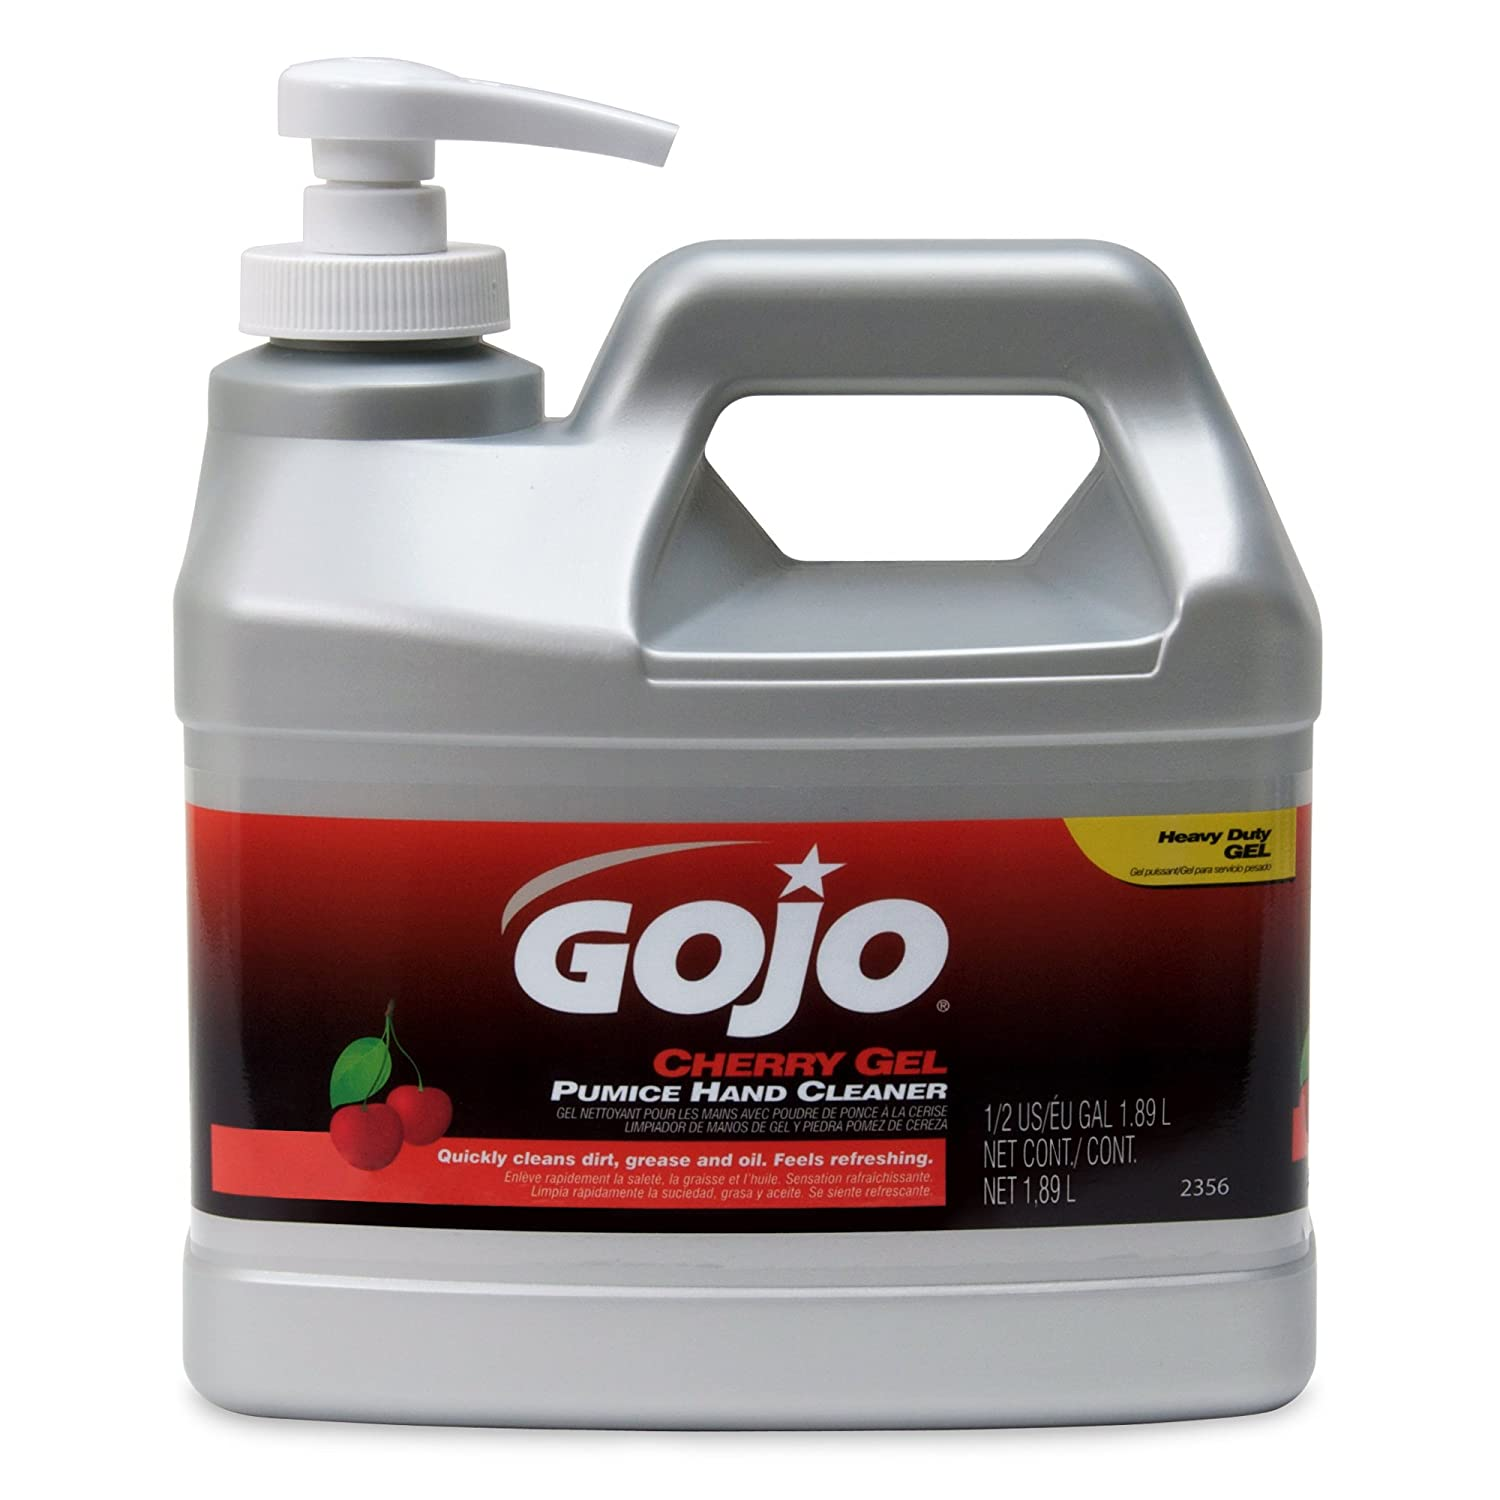 Gojo Industries 2356-04 1' x 1' x 1' Cherry Hand Cleaner, 1/2 Gallon